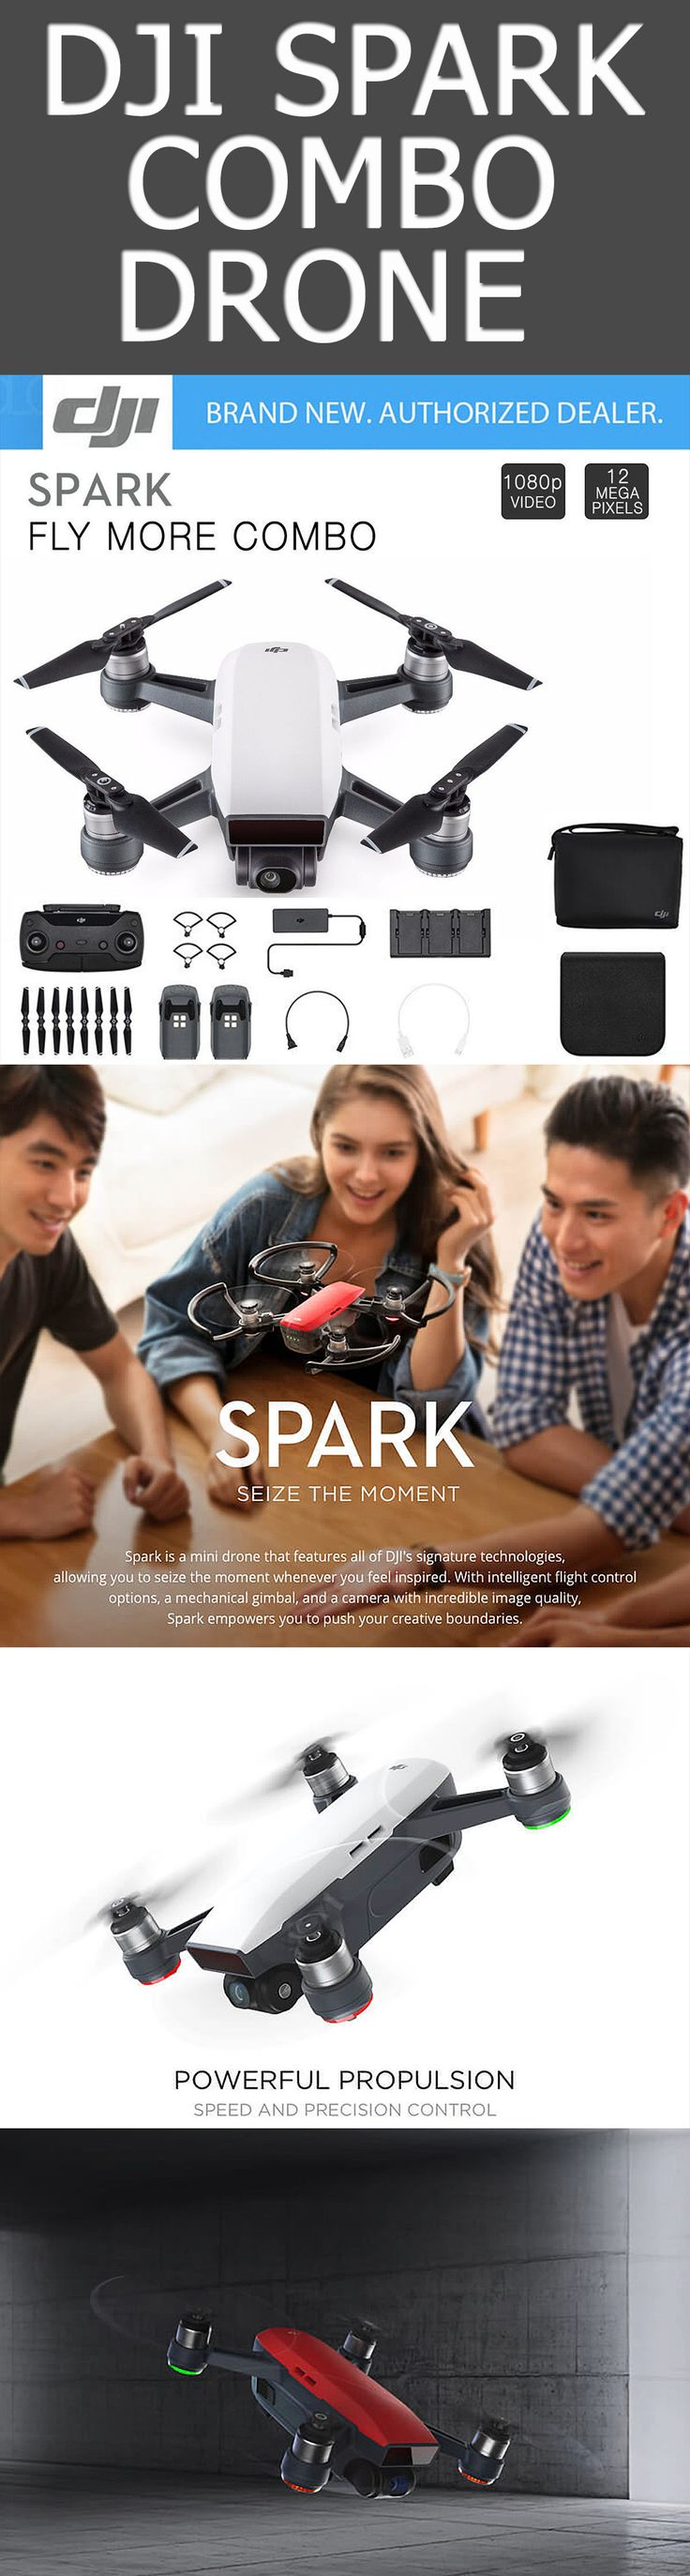 DJI Spark Quadcopter. Though agile in the air, drones can be bulky and cumbersome when on land. Not so with the Spark from DJI, which won't hold you back no matter what the adventure. This compact quadcopter features an integrated camera with motorized stabilization to capture 12MP photos, 1080p Full HD videos, and even aerial selfies. | DJI Spark Quadcopter | dji drone | drone dji | quadcopter | drone |